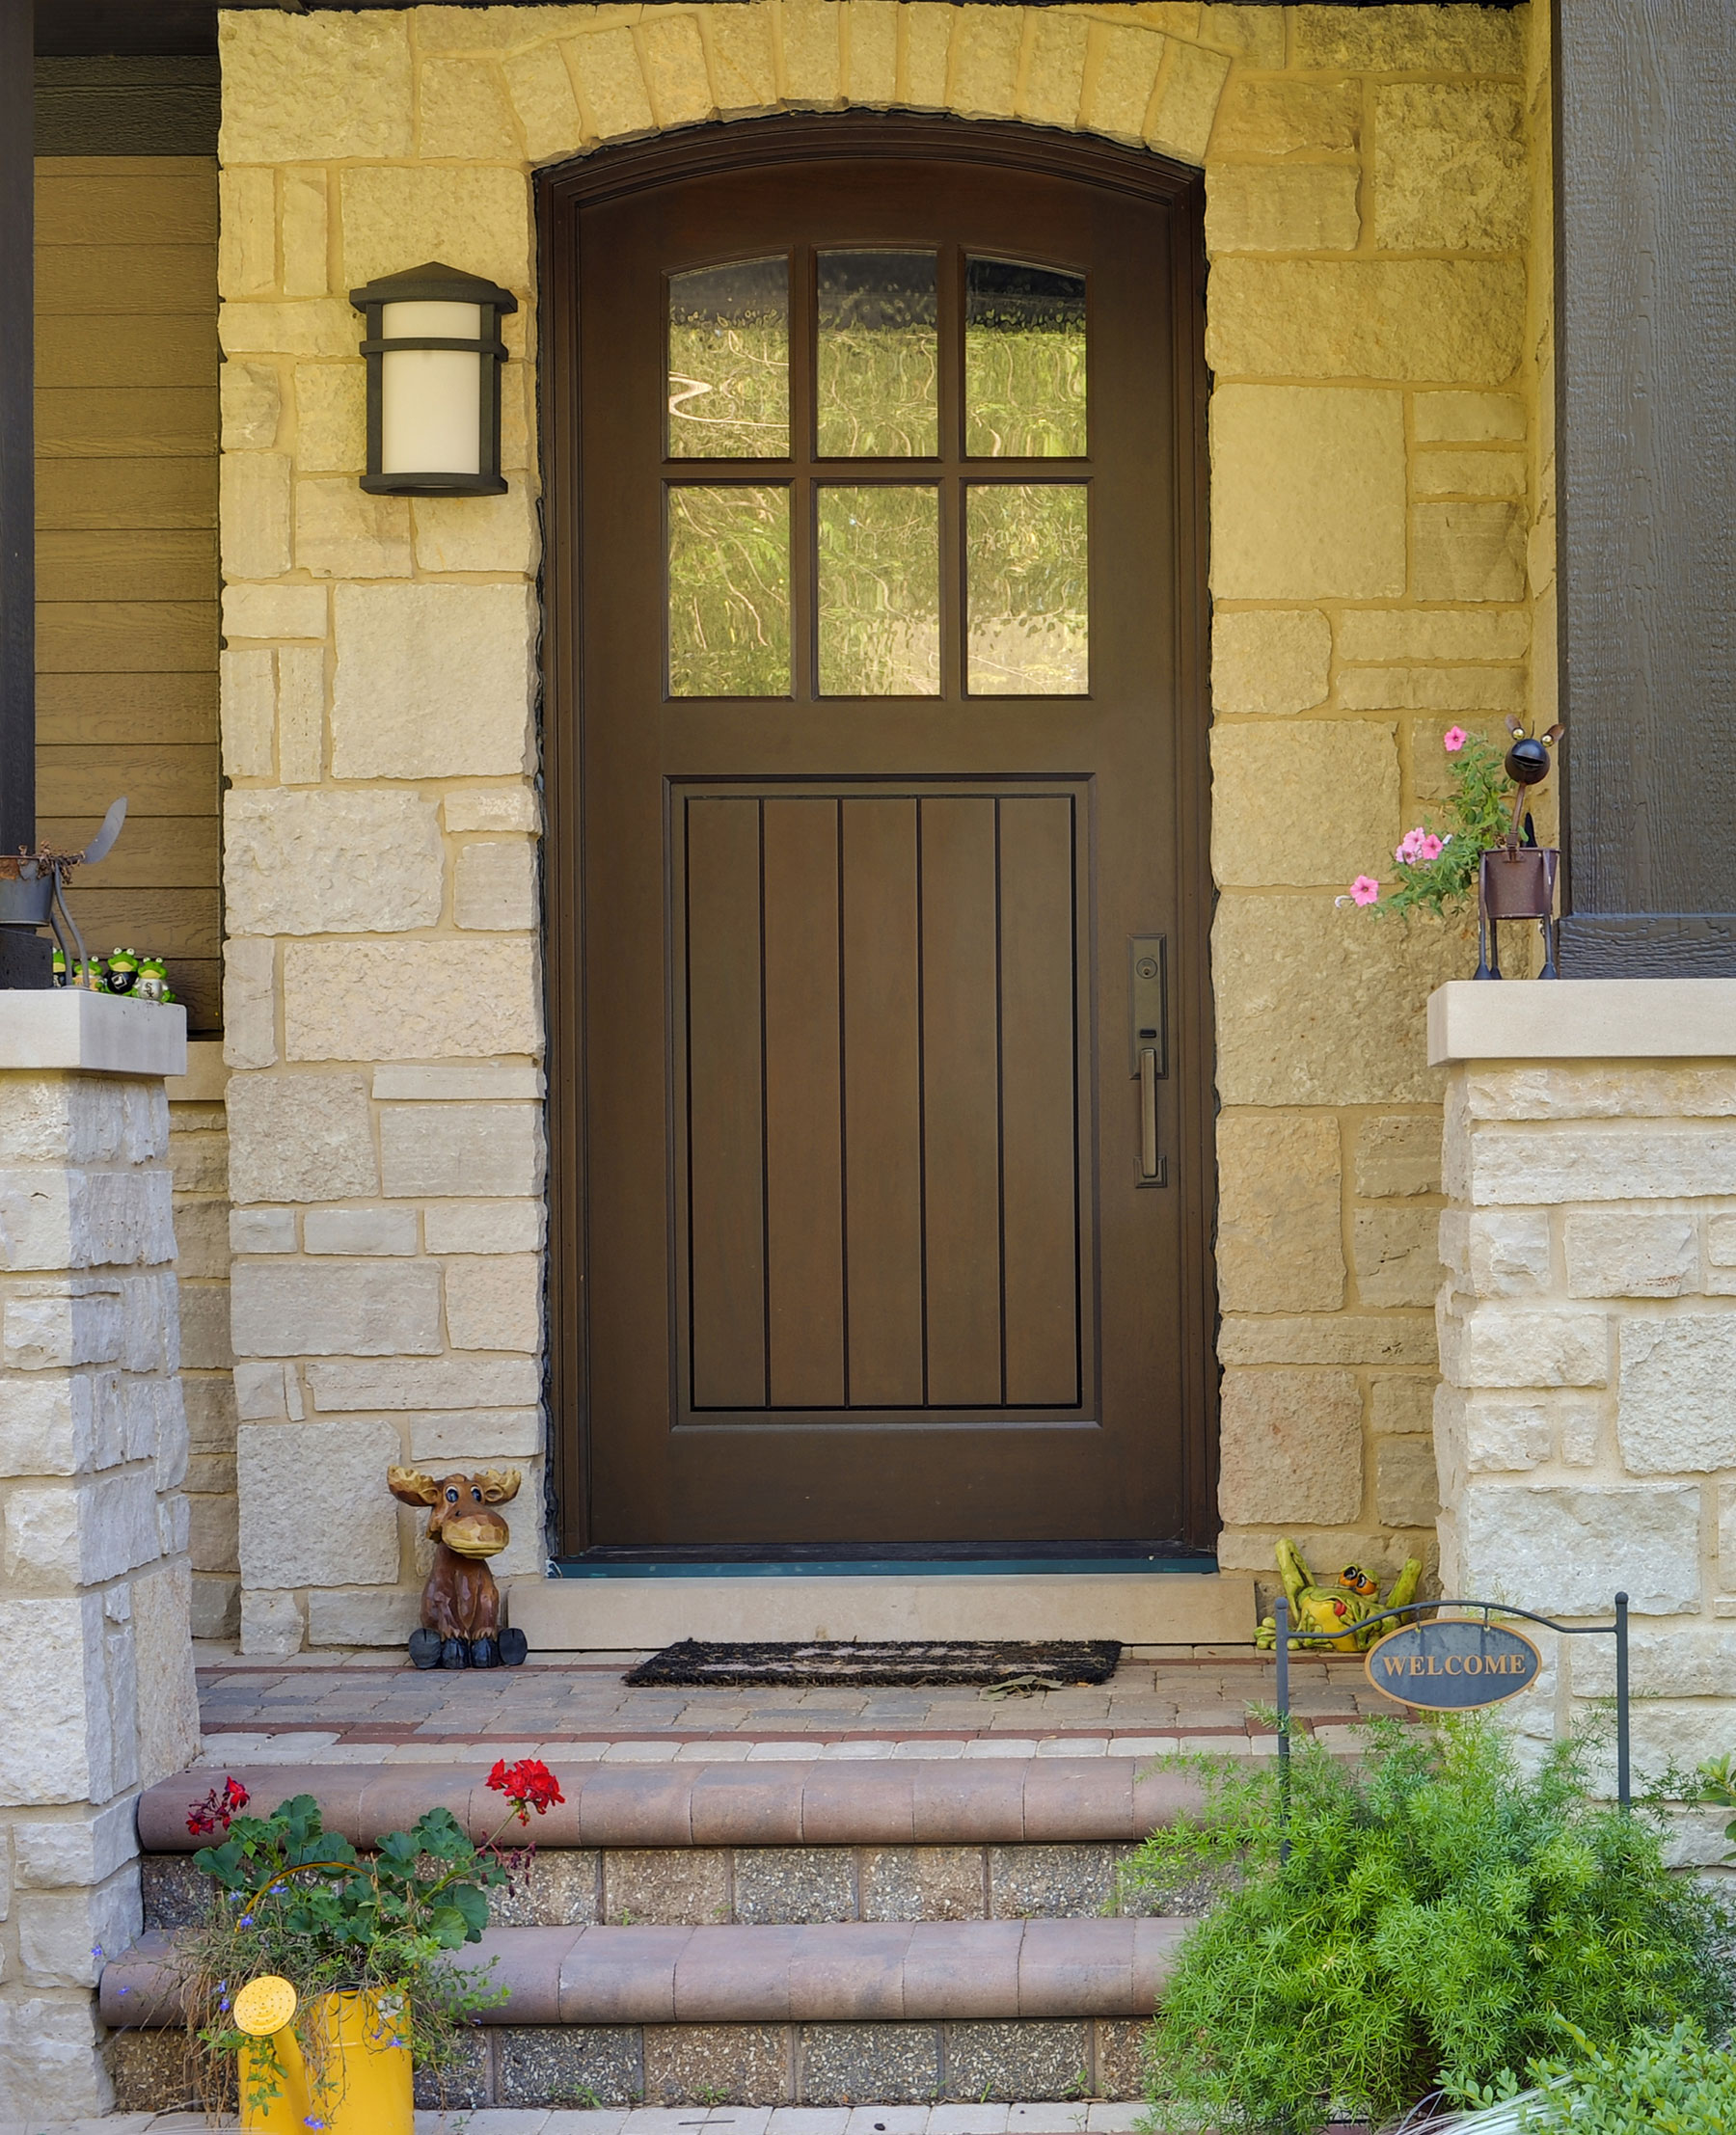 Custom Wood Front Entry Doors | single door privacy glass, in classic french collection  - Glenview Doors - Custom Doors in Chicago